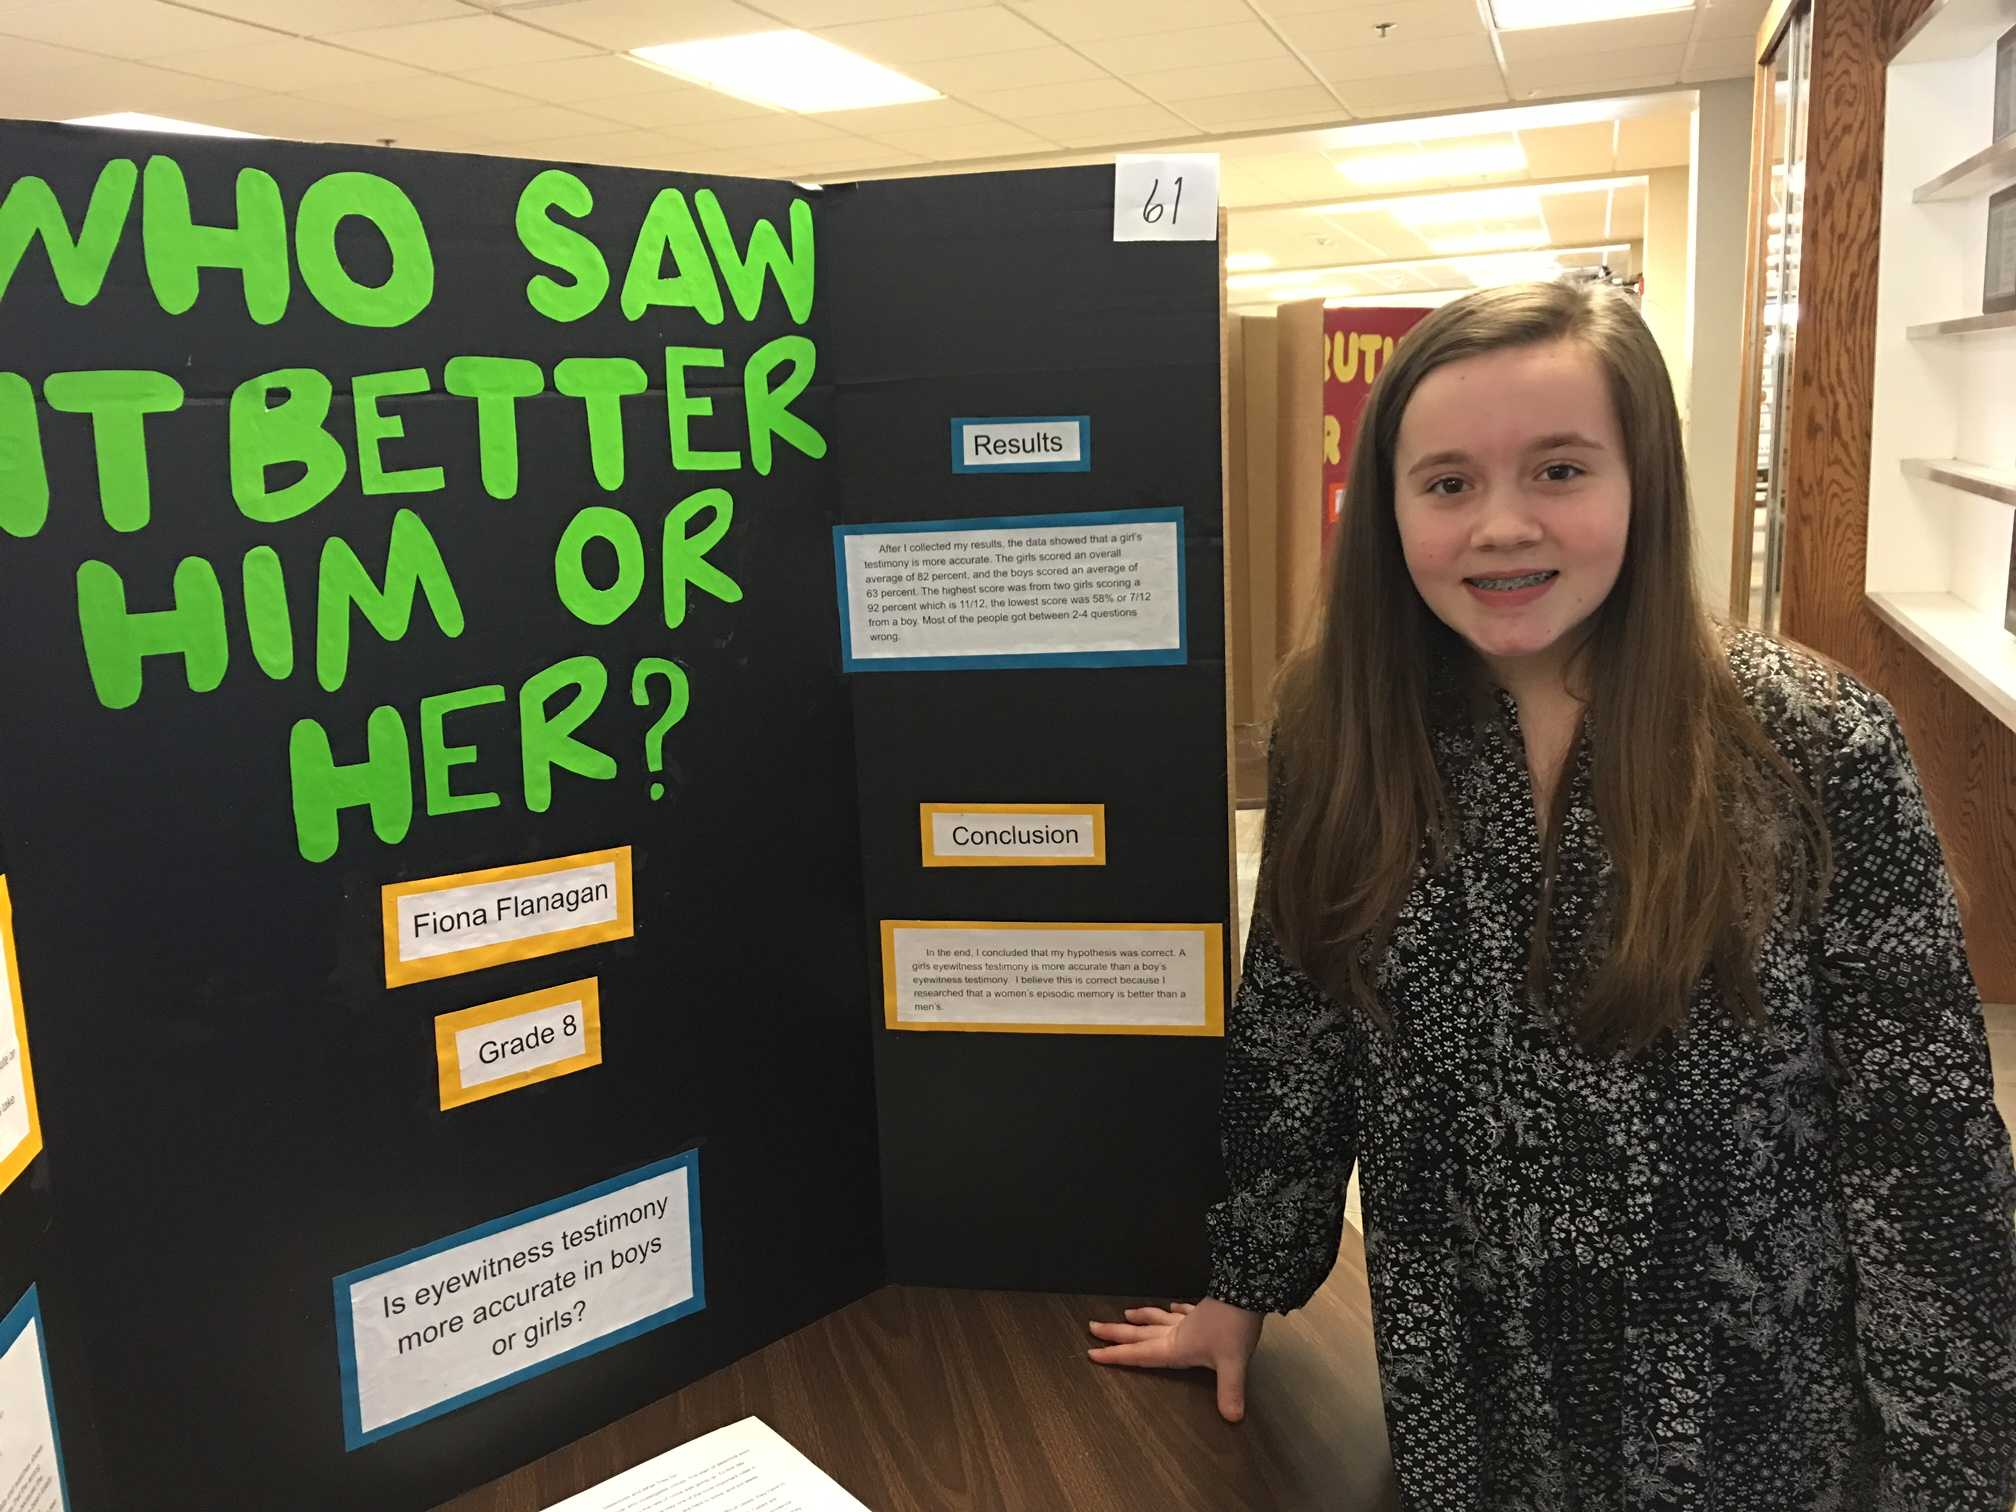 fair science projects question project impress crowd cotternews